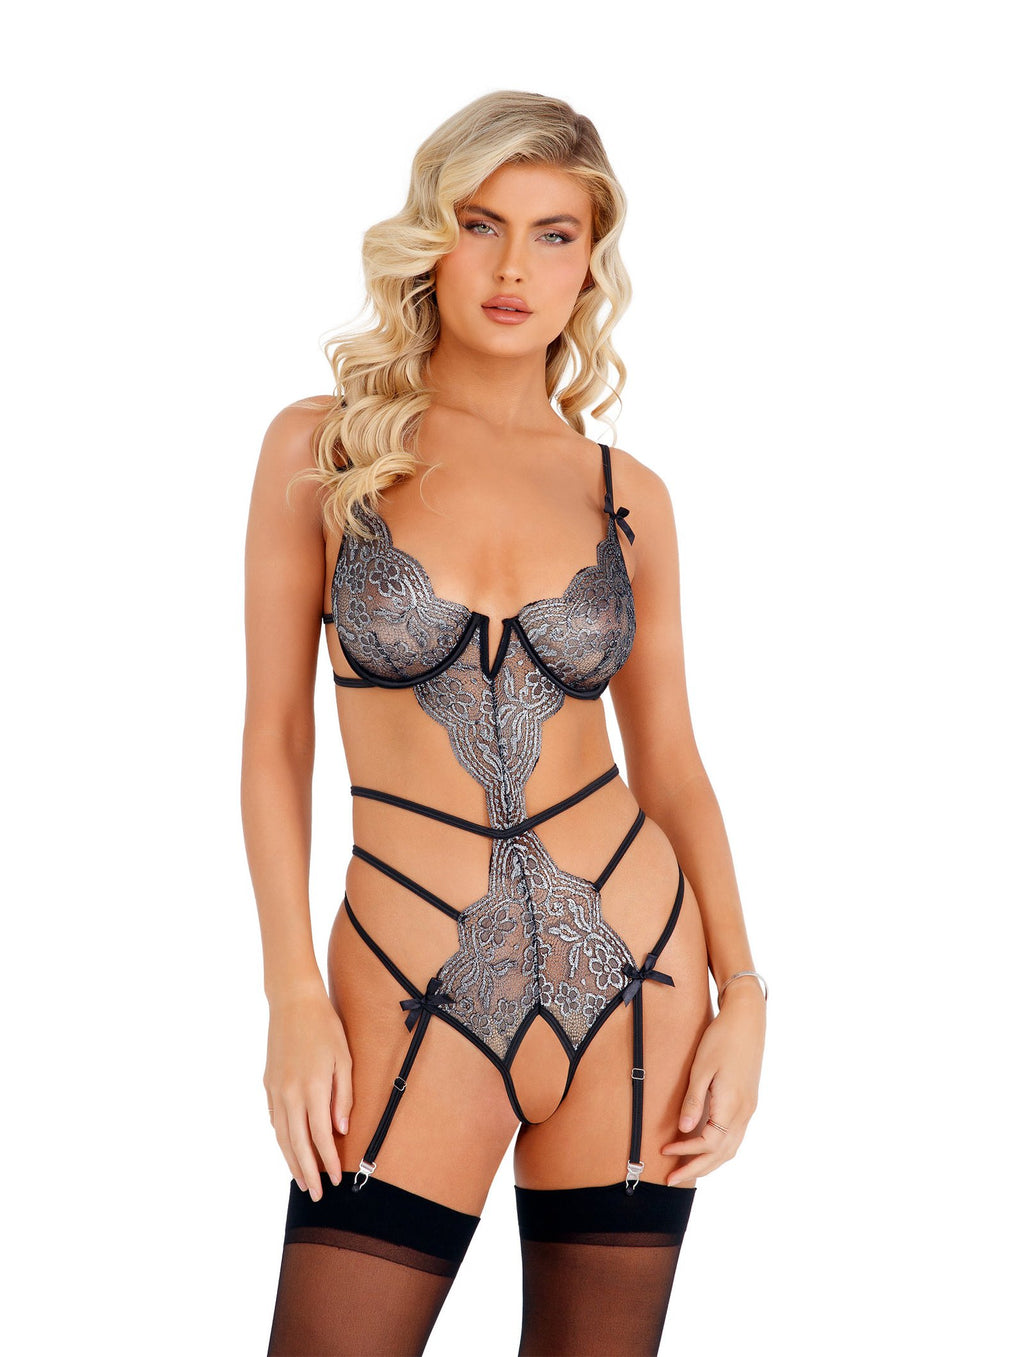 Roma Confidential LI403 - Strappy Metallic Crotchless Teddy-Bodysuits & Teddies-Roma-X-Small-Silver/Black-Unspoken Fashion